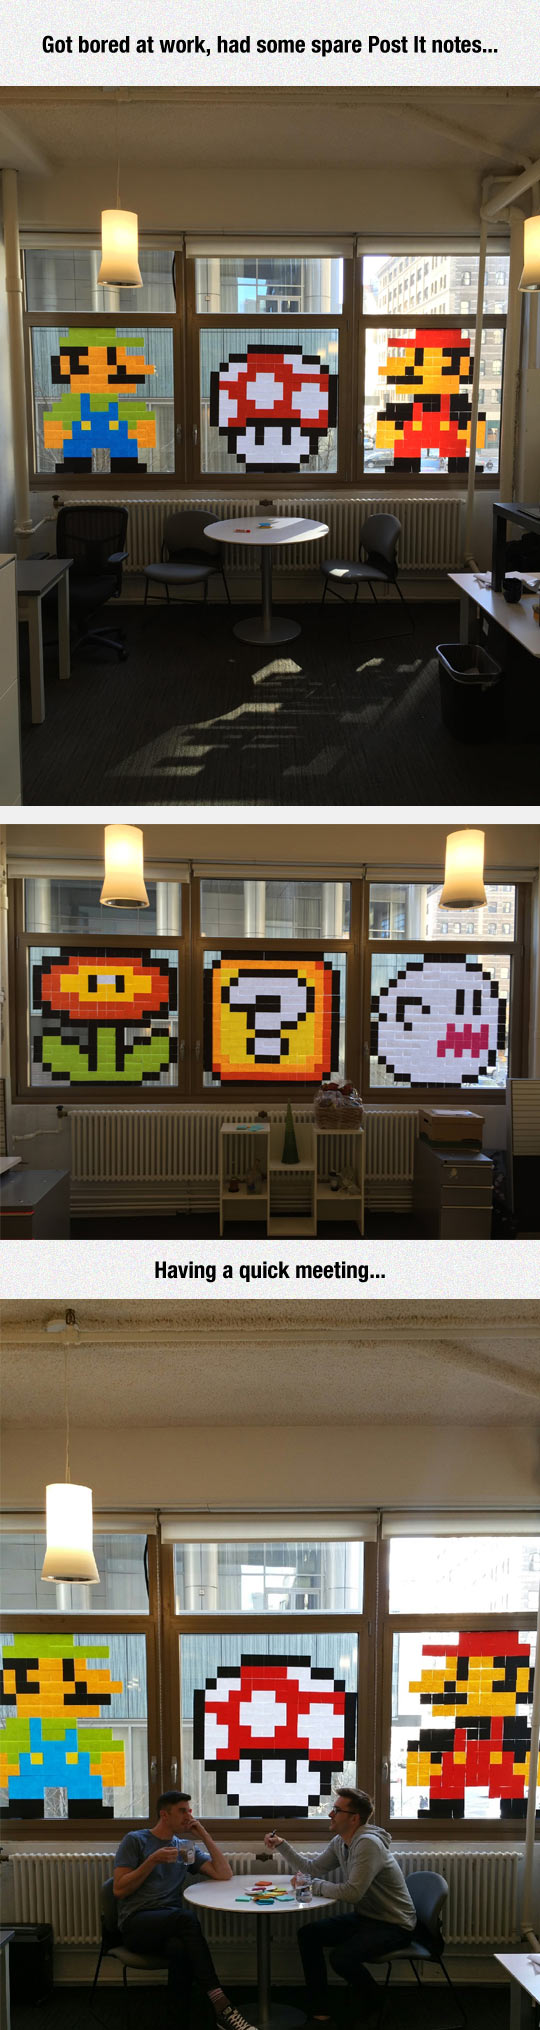 funny-Post-It-Mario-art-work-office